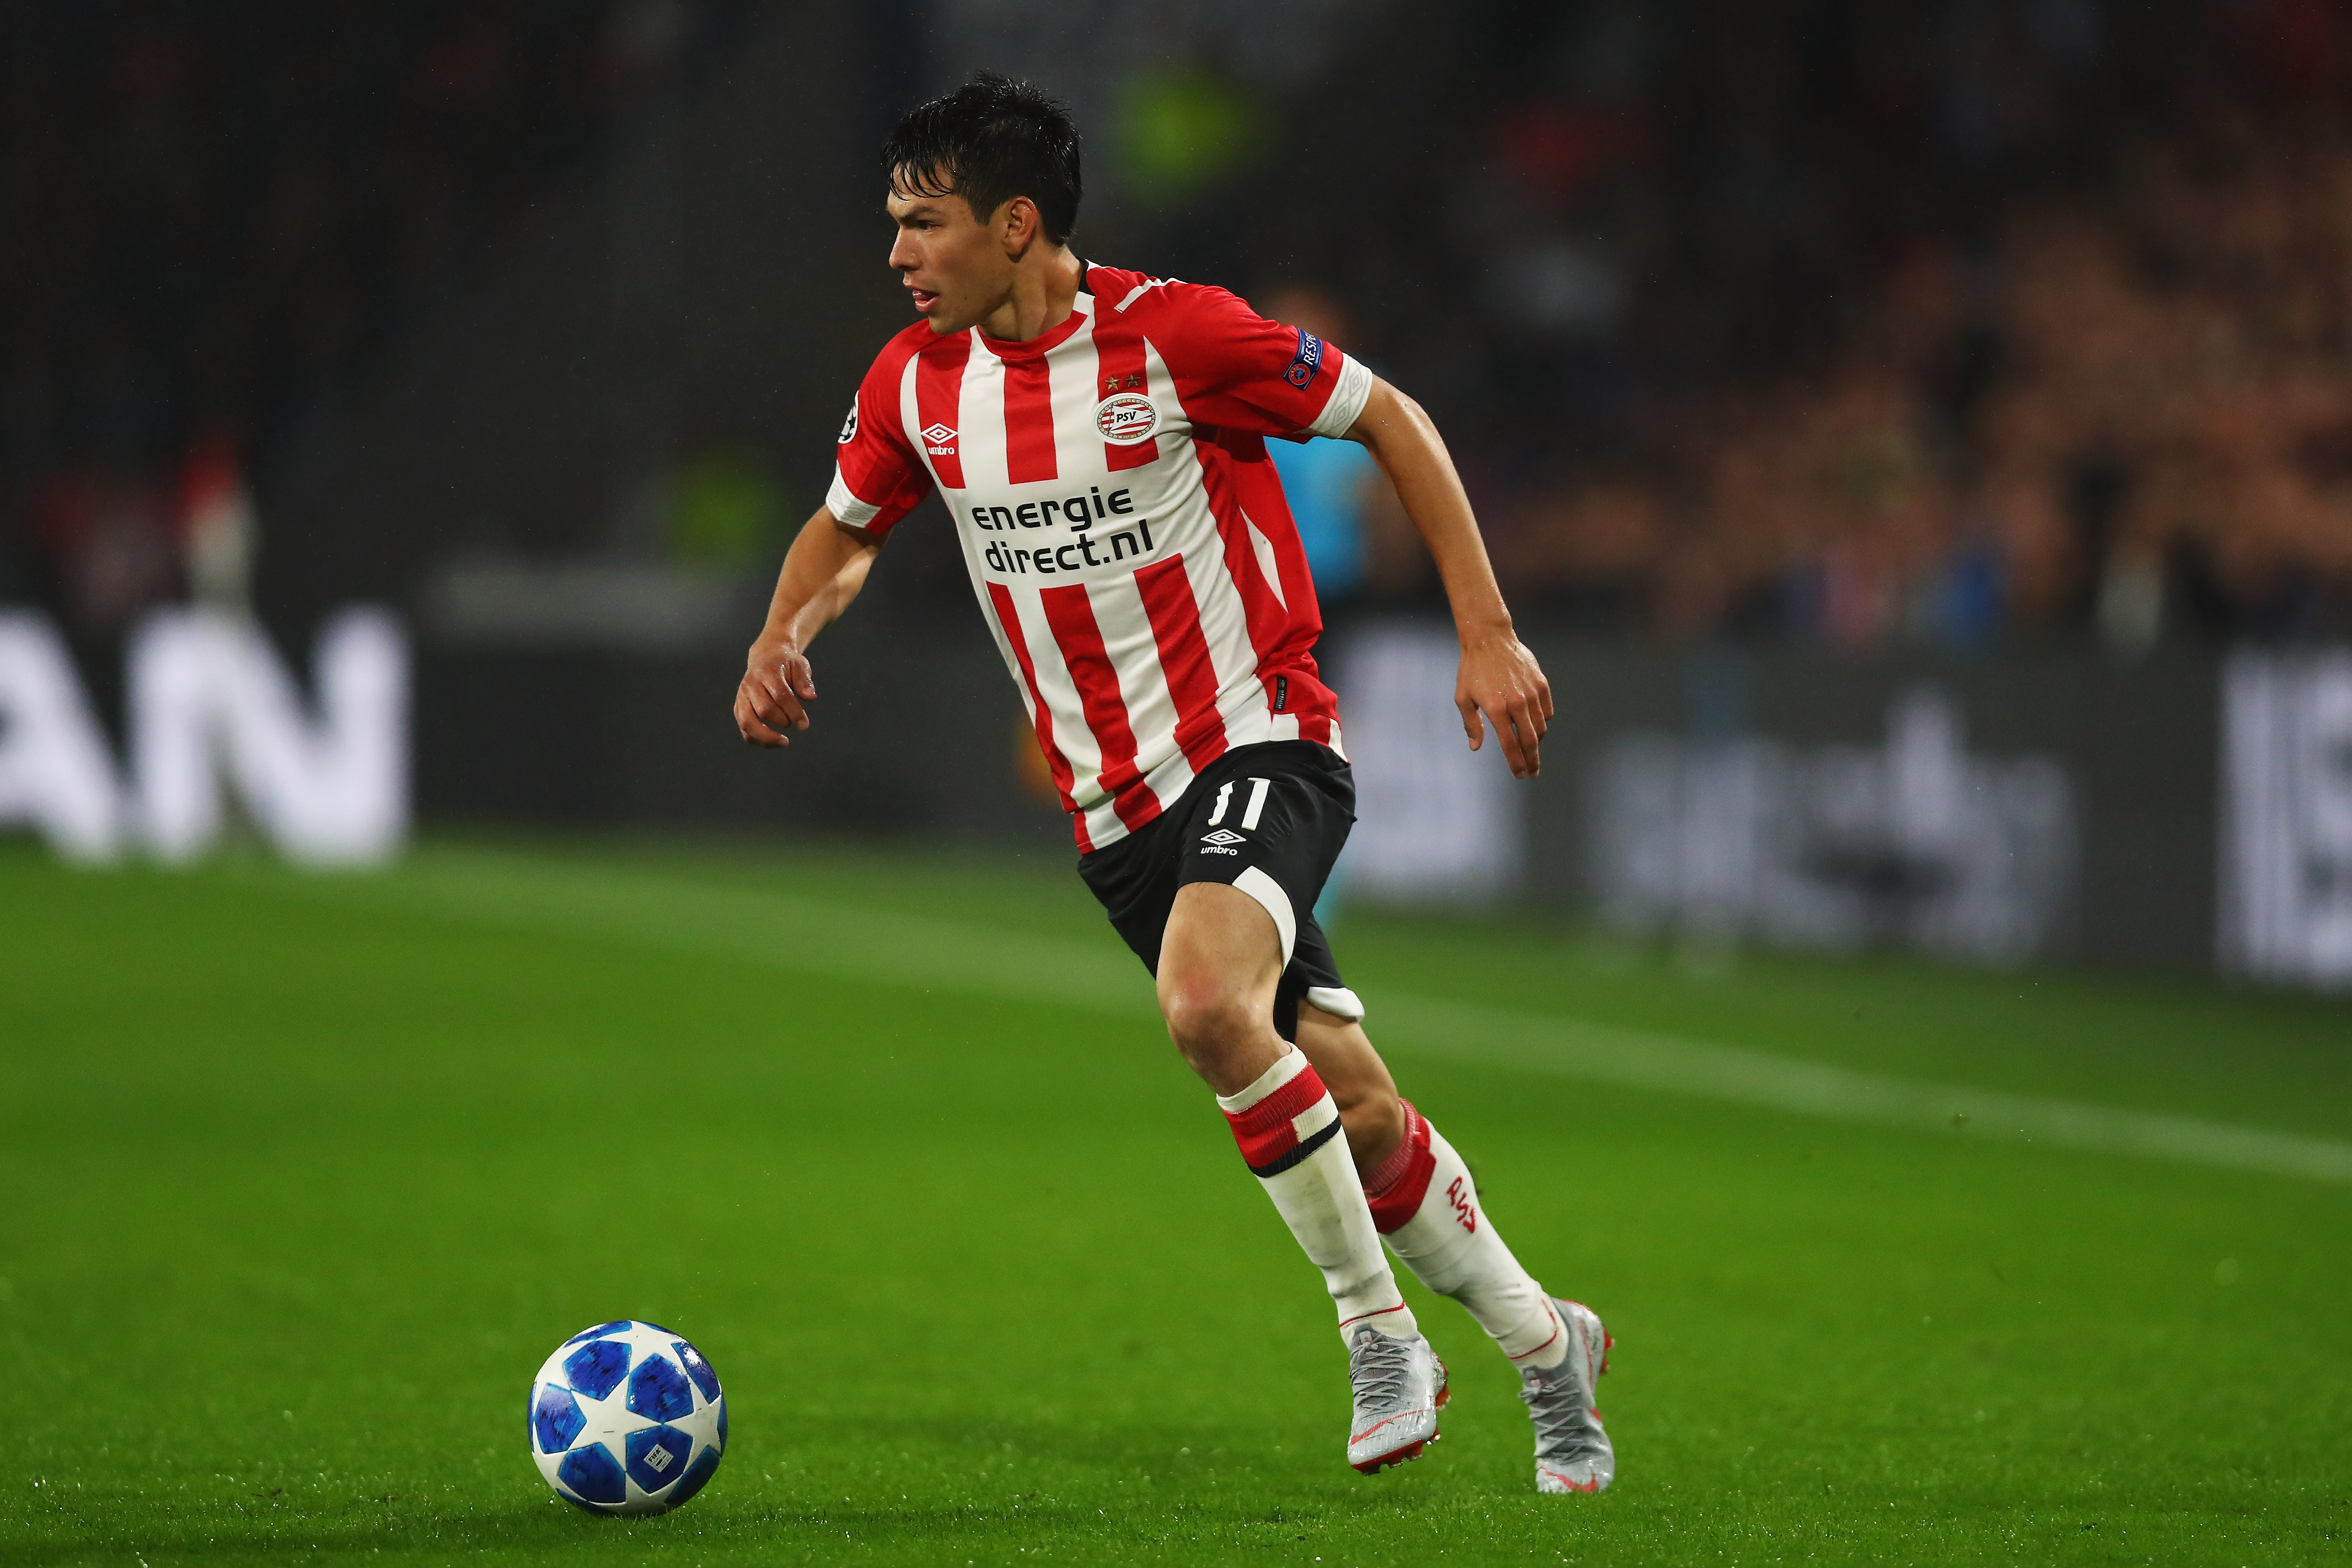 Lozano will be hoping to shine against Spurs when the Premier League team comes to Eindhoven.